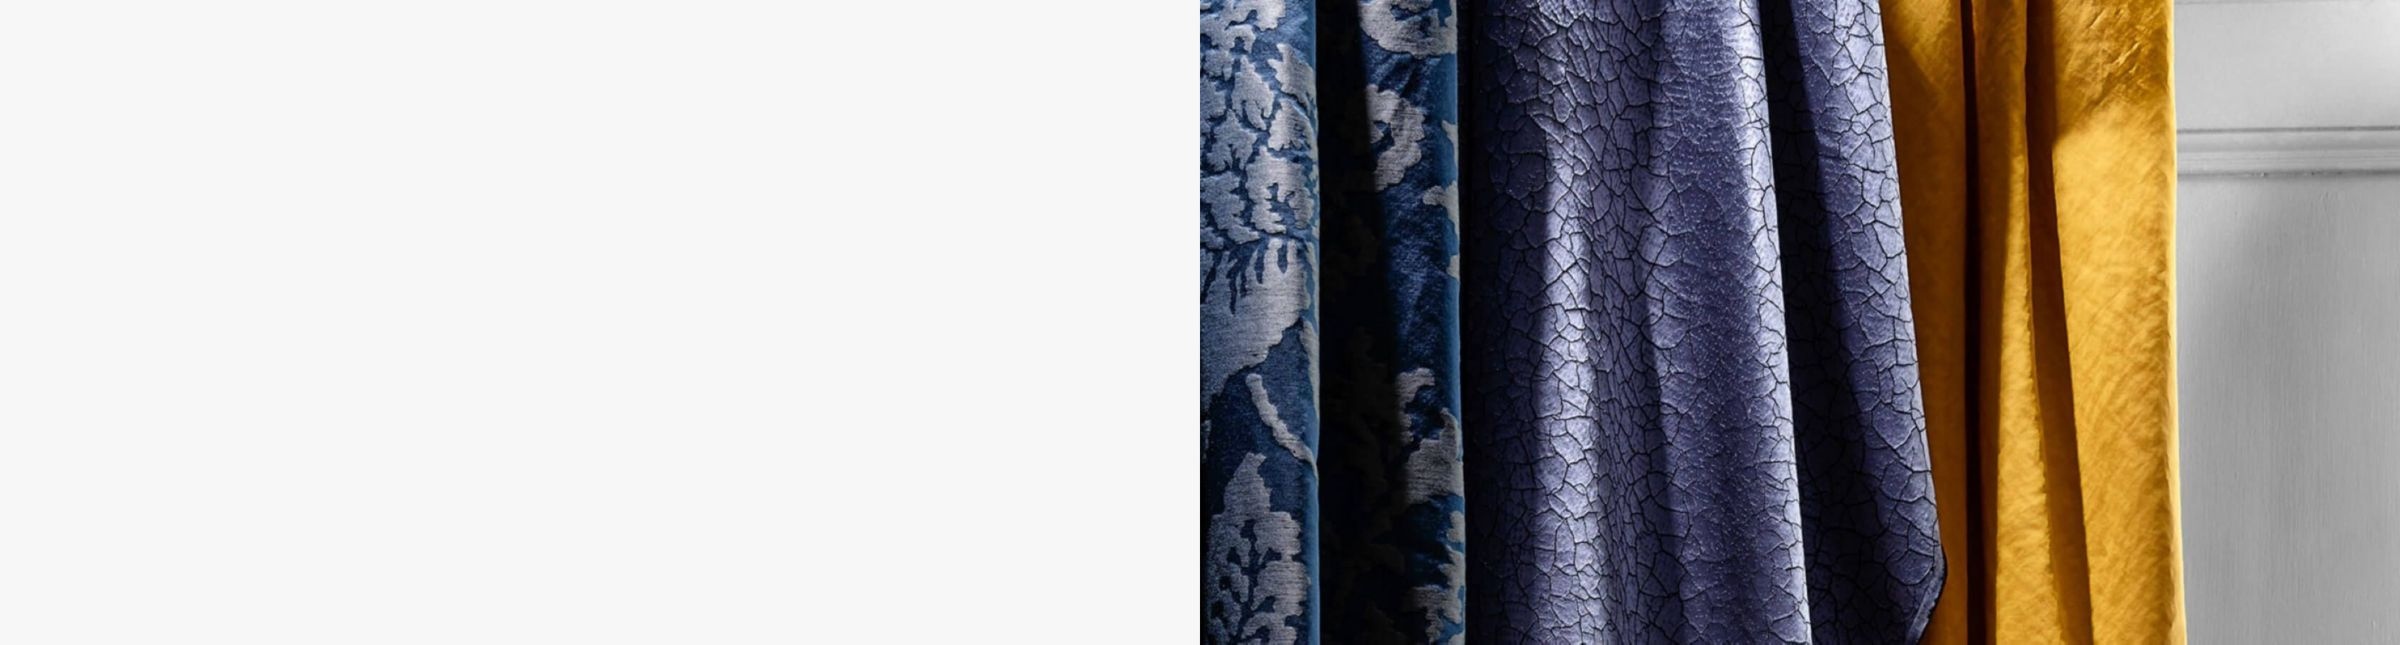 fabric curtain upholstery textile